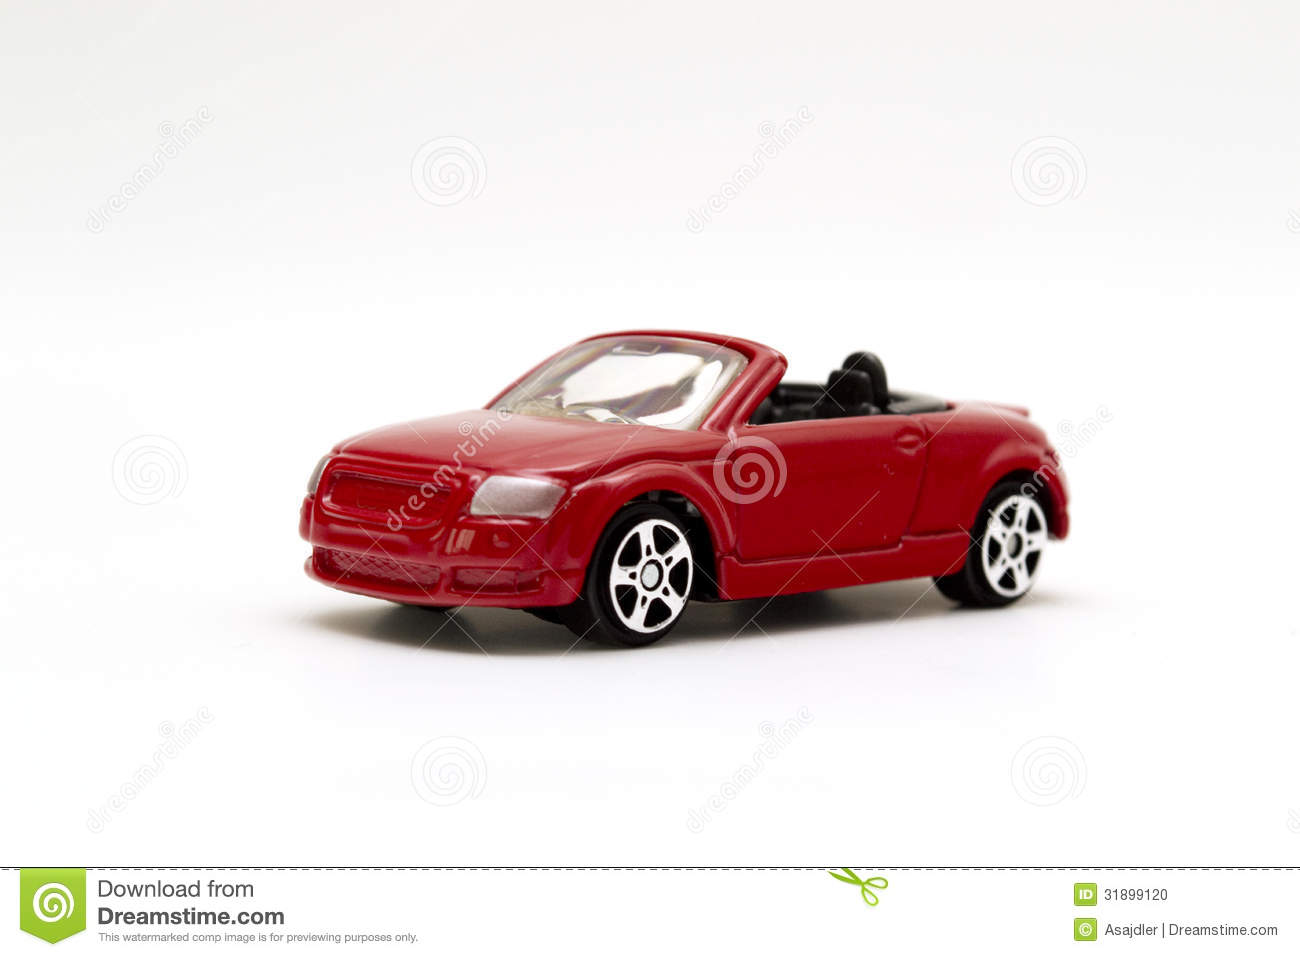 Red Toy Sports Car Stock Photo - Image: 31899120